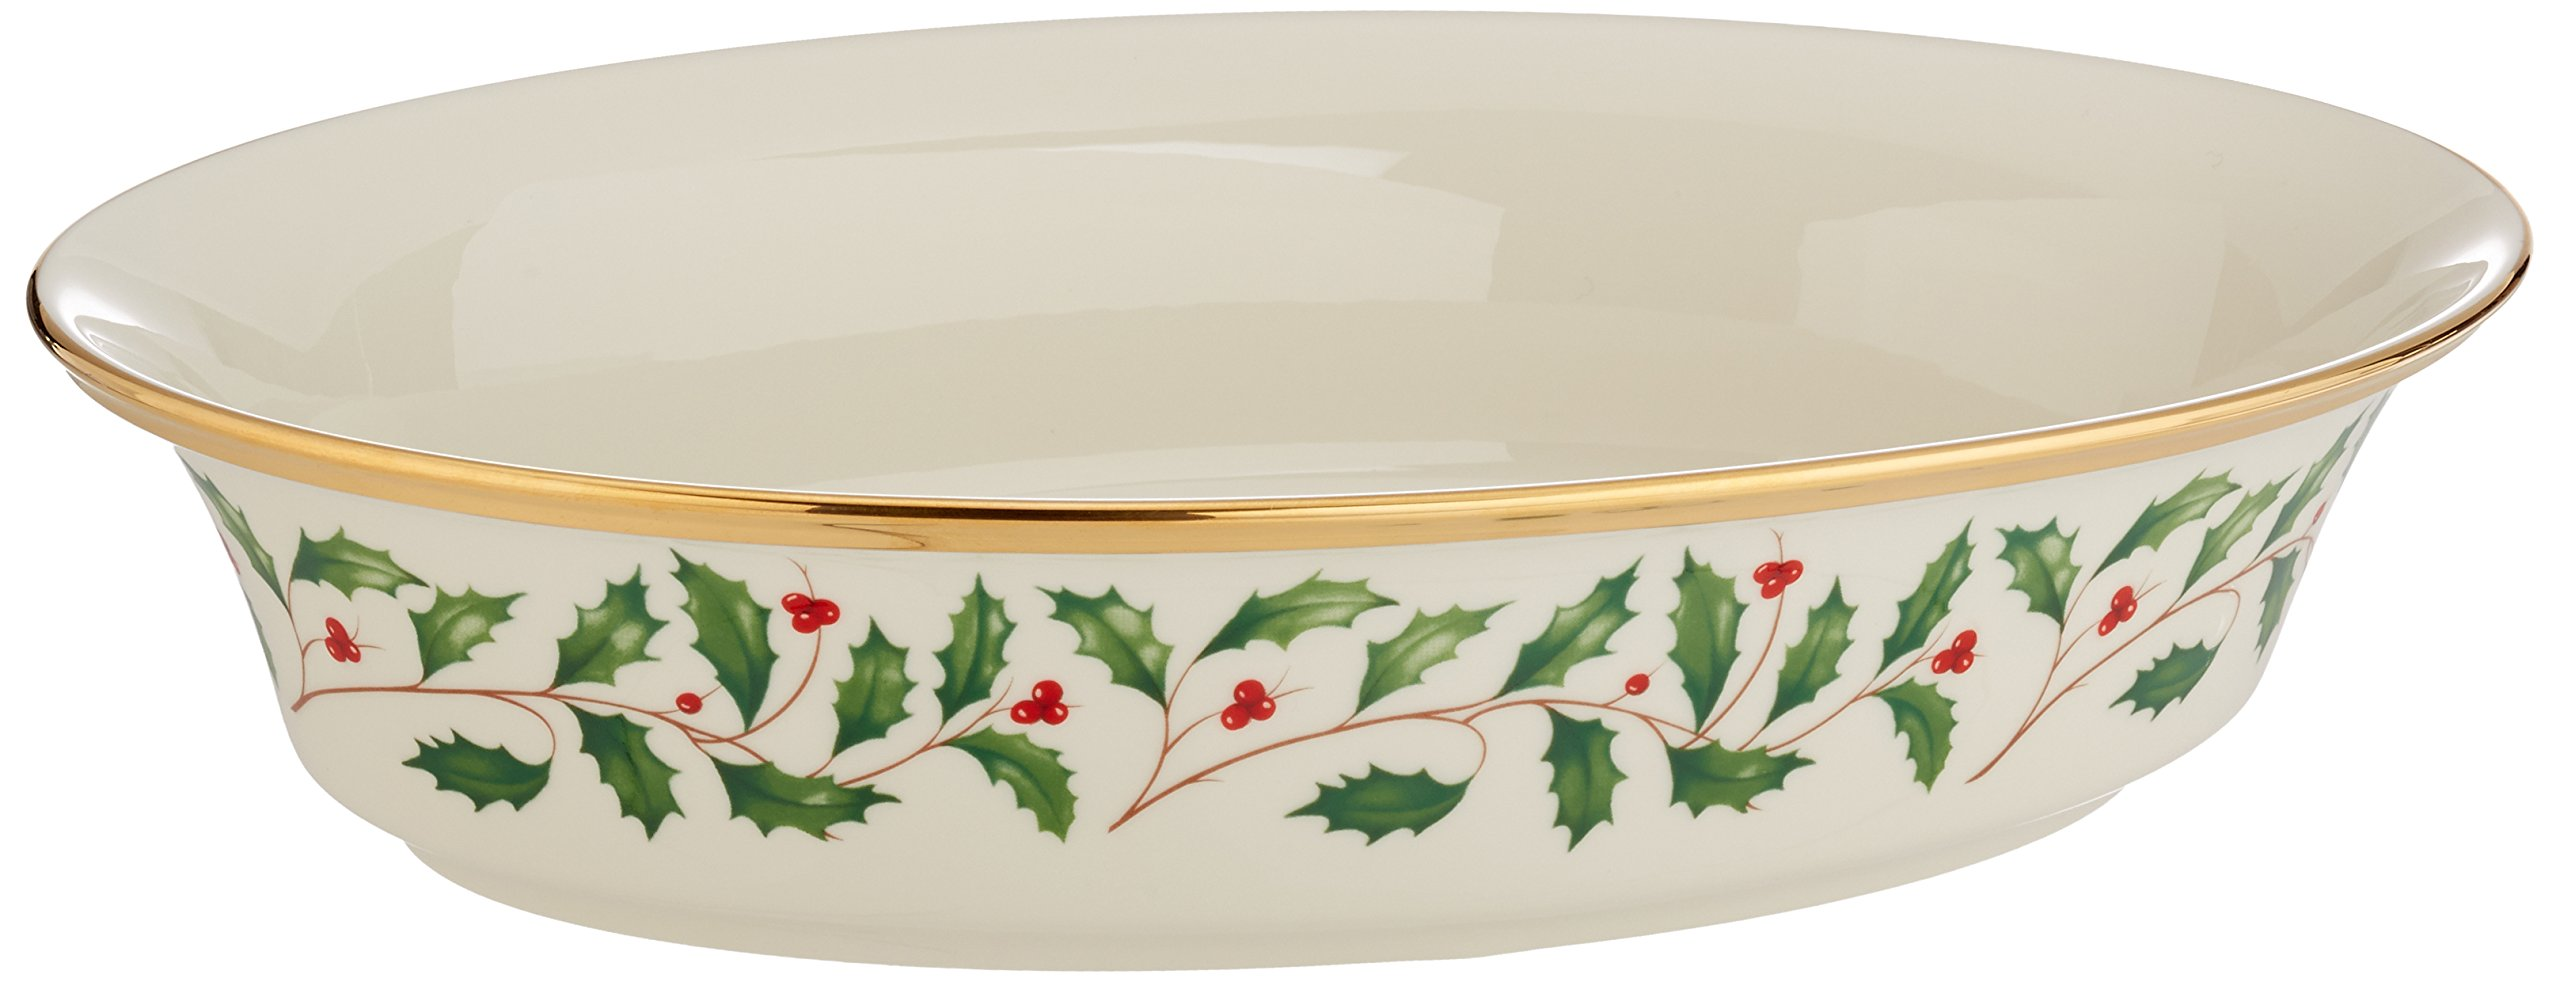 Lenox Holiday Open Vegetable Bowl by Lenox (Image #3)